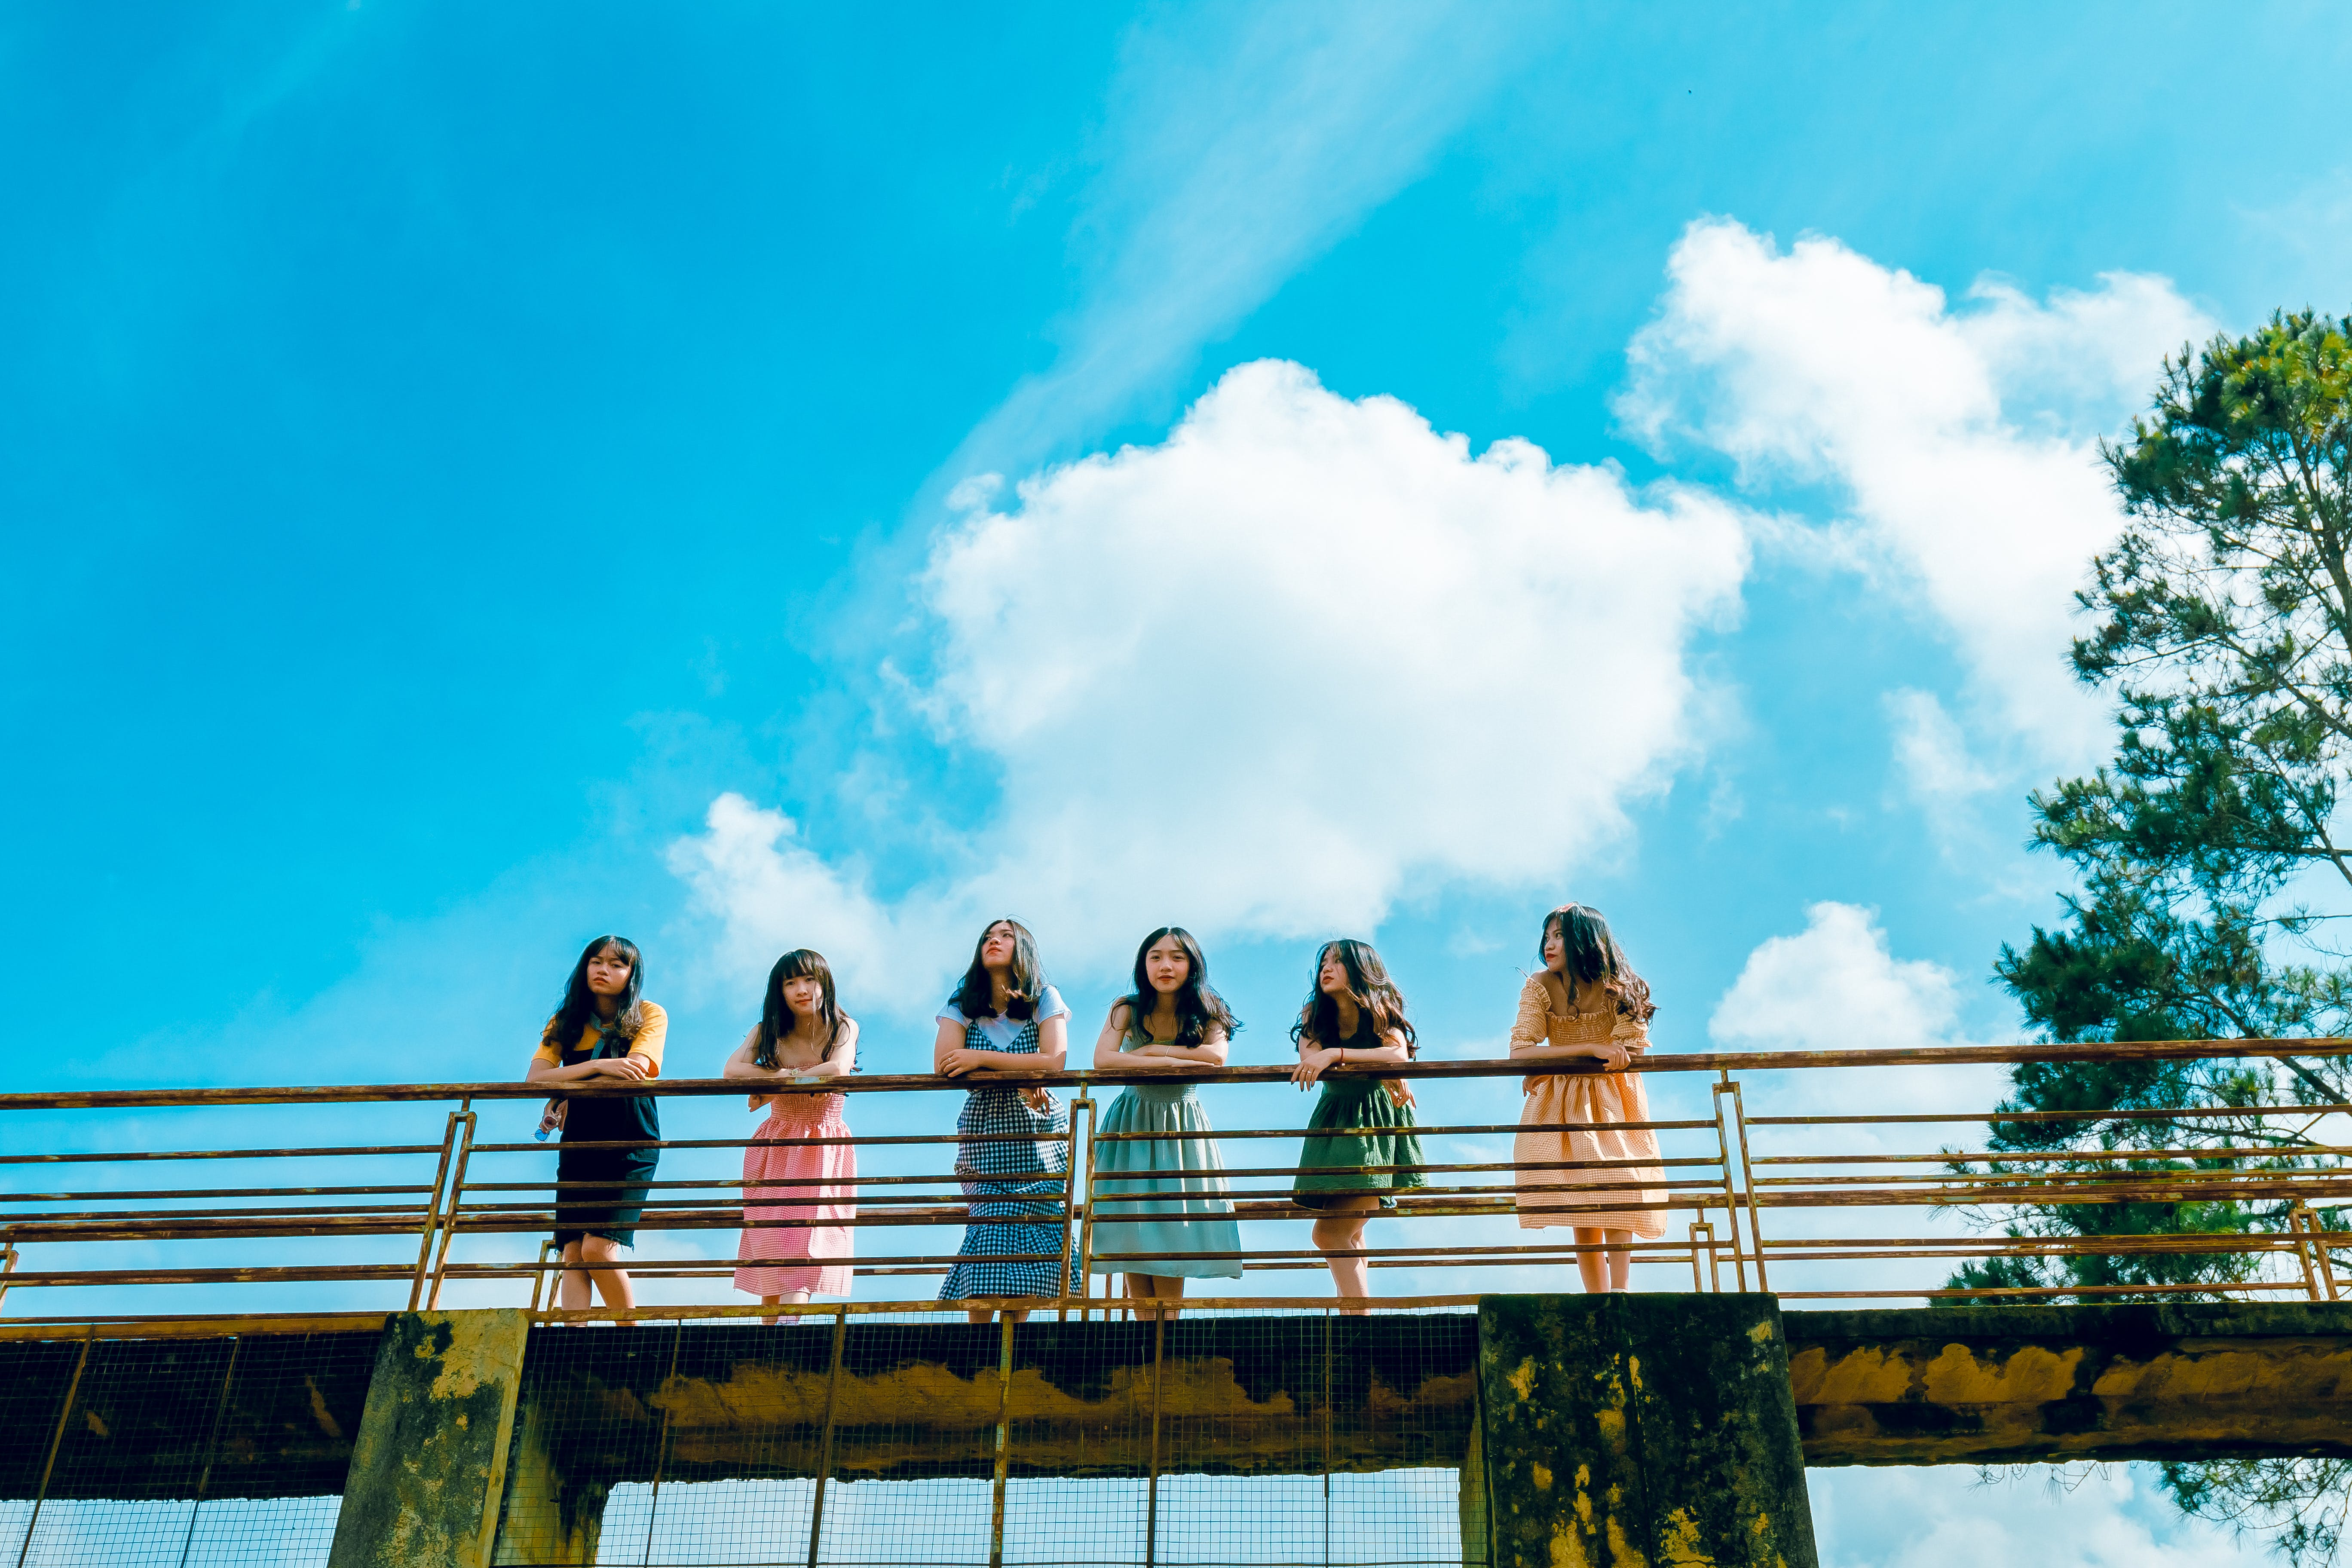 Six Women Wearing Dress Leaning on Bridge Rail